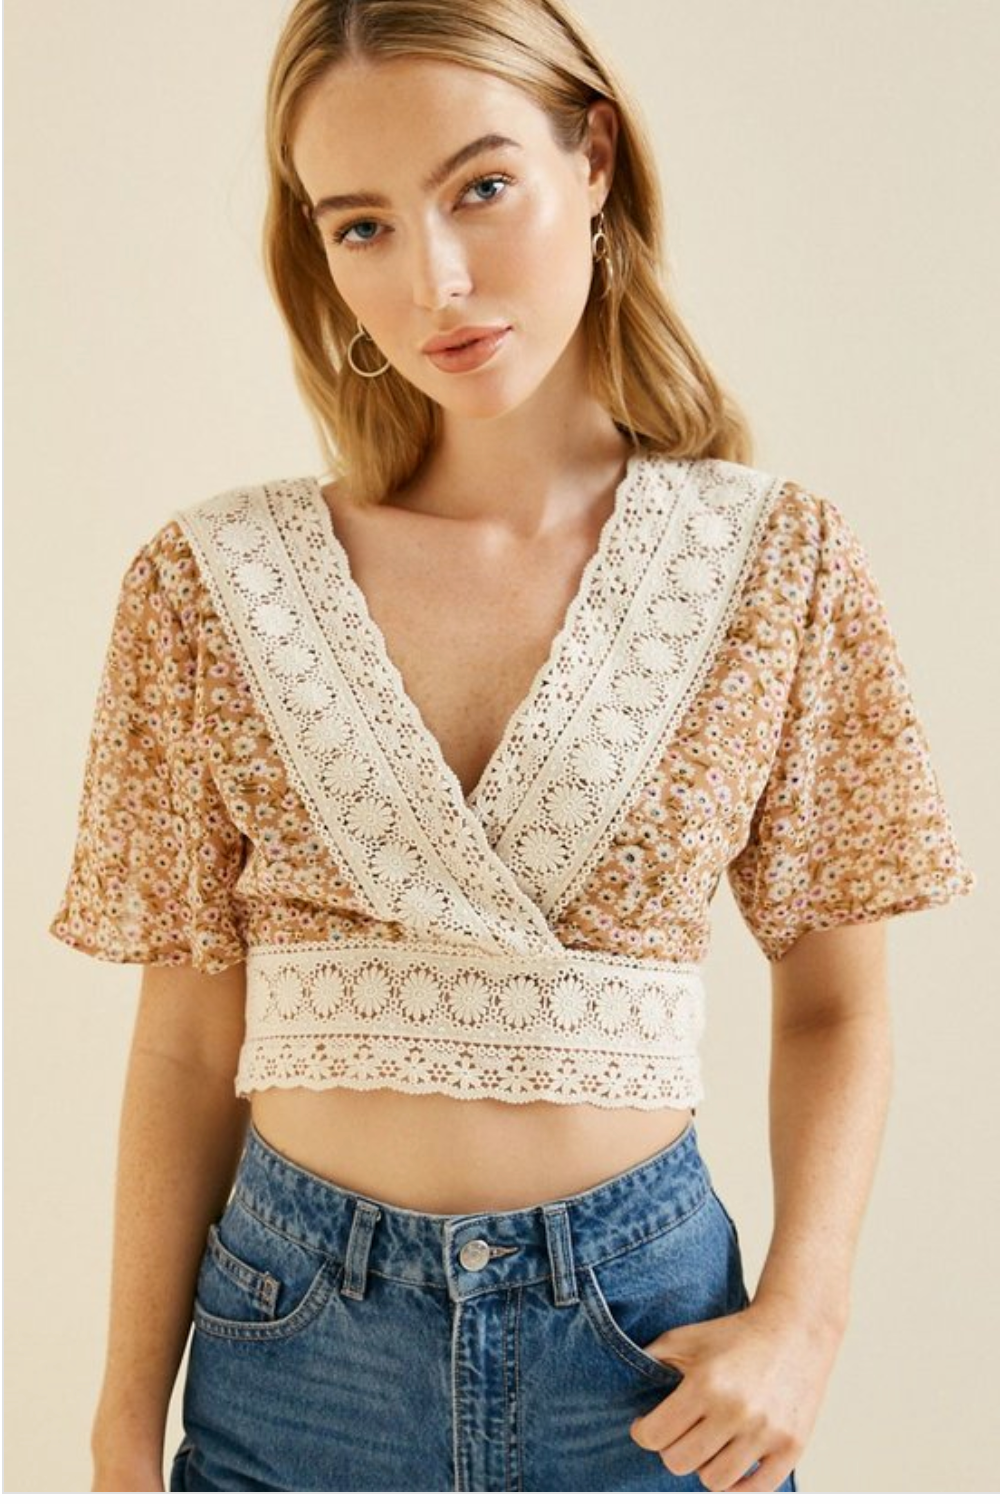 Floral Crochet Flutter Sleeve Lace Crop Top - Sswing Lifestyle Company